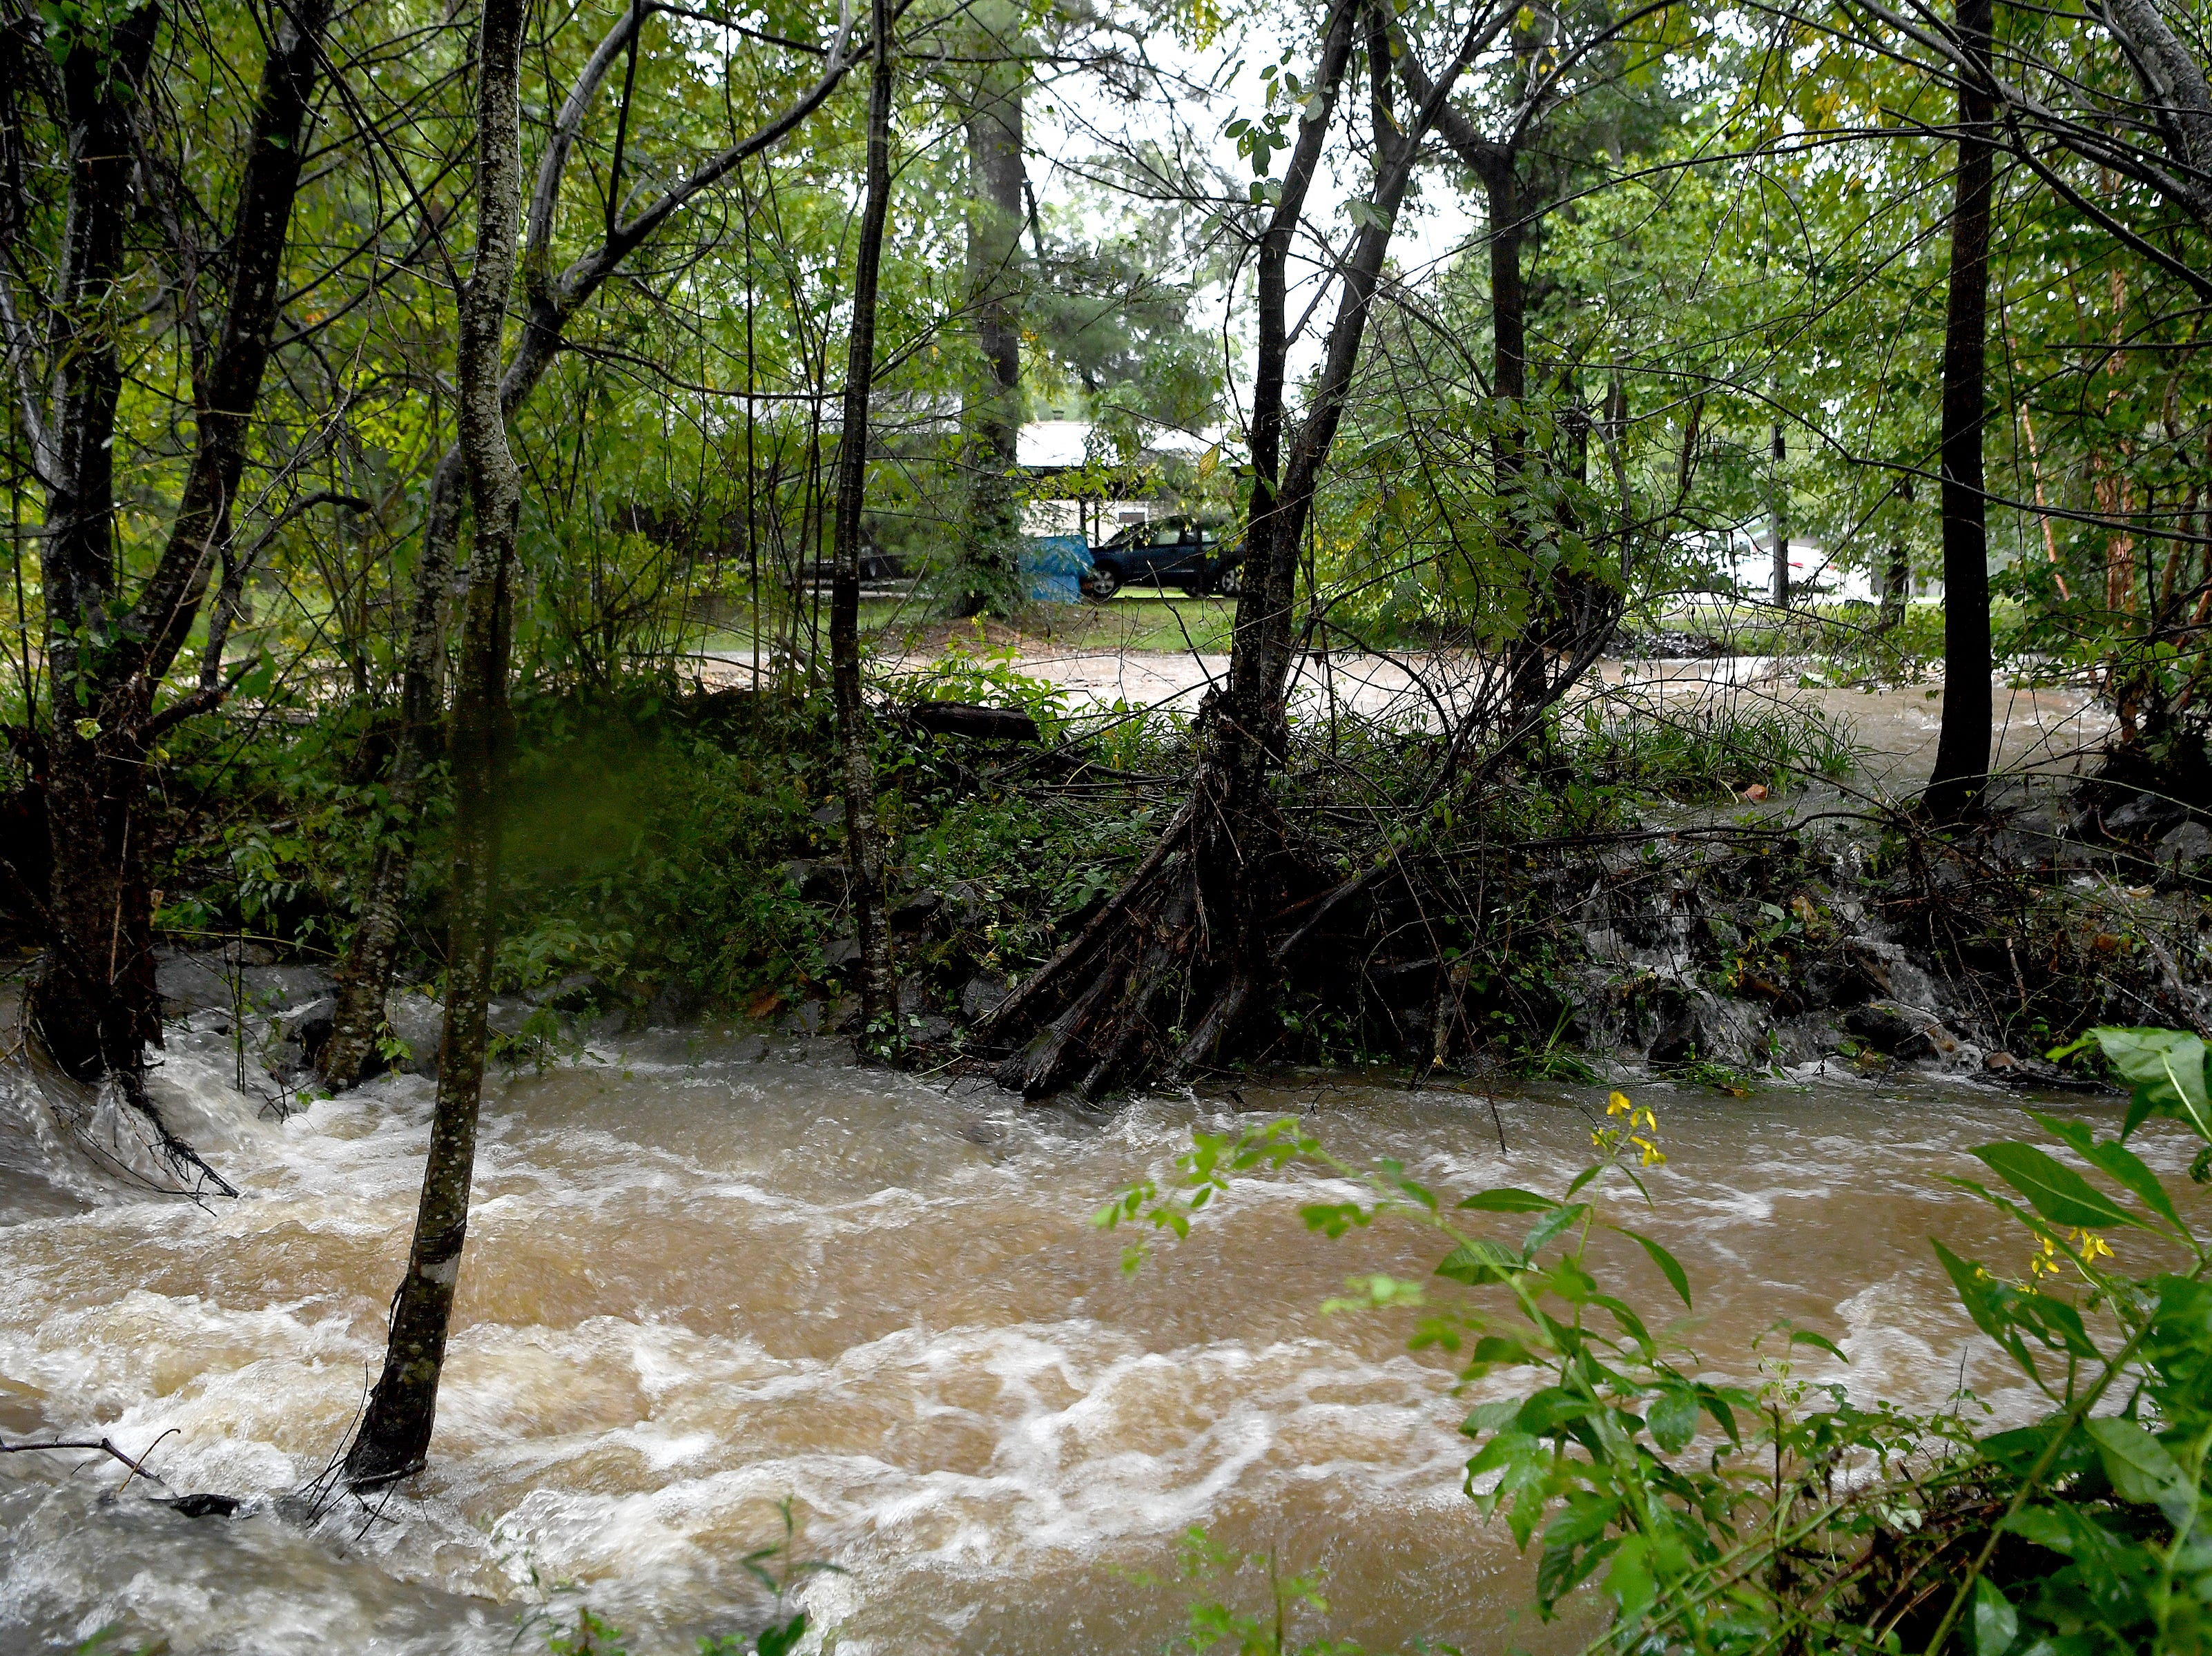 Water from Flat Creek flooded into the Portman Villas Mobile Home Park in Black Mountain and continued to rise forcing evacuations of homes on Sept. 16, 2018.